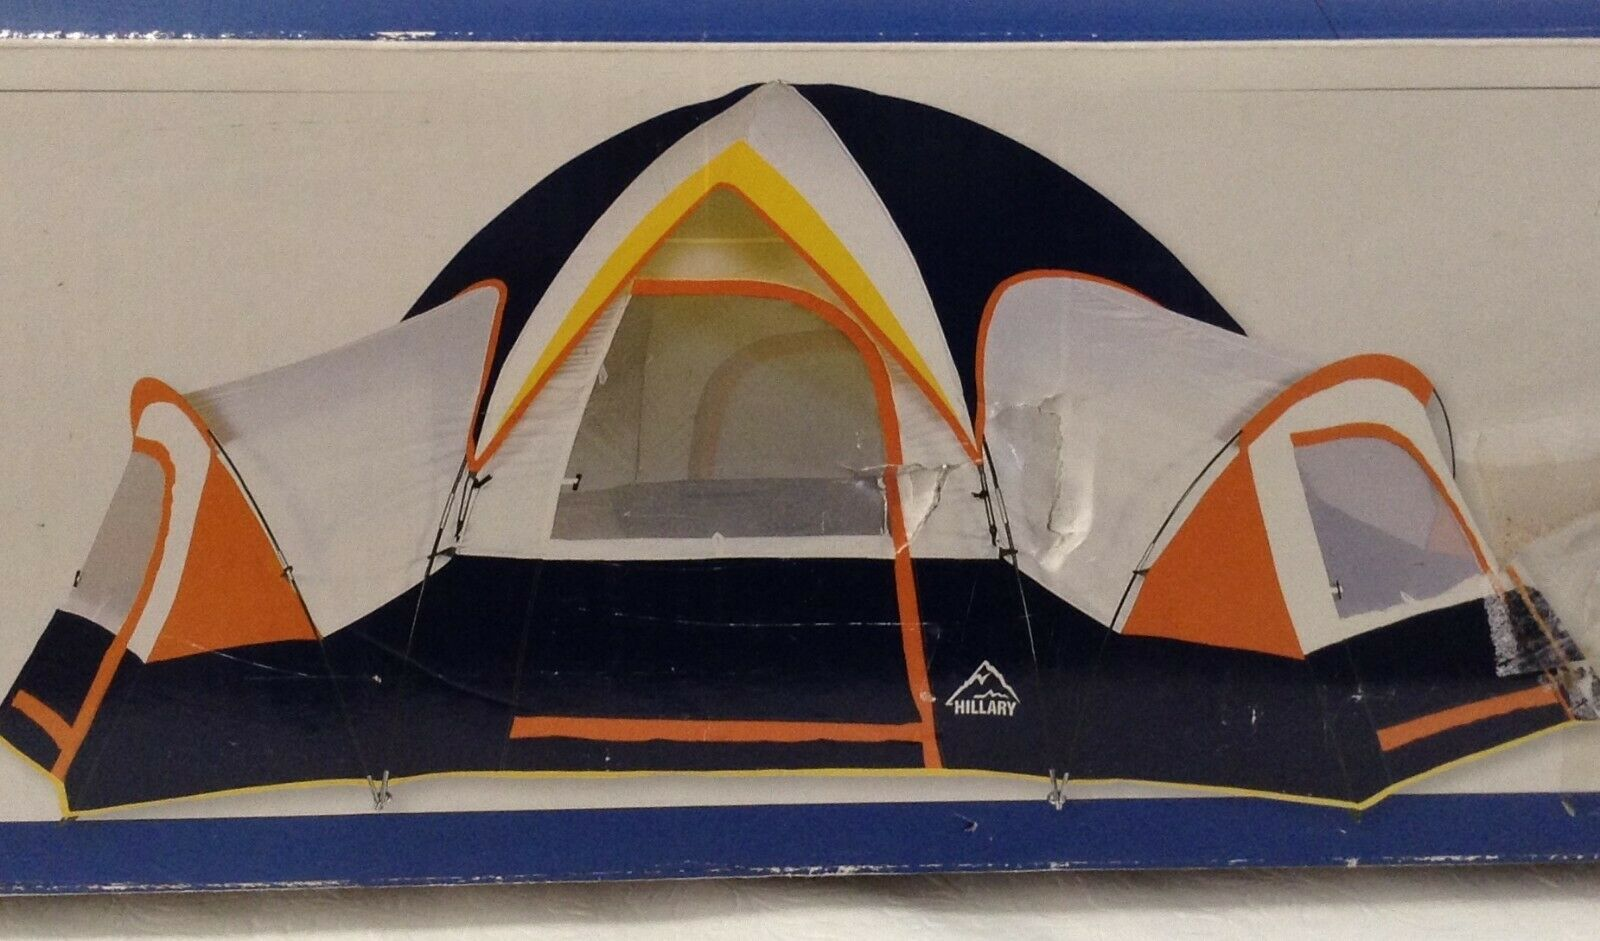 Hillary Hex Dome Camping Tent w  Two Lockers Sleeps 3-4 UNUSED 12.5'x7.5' Ht 52